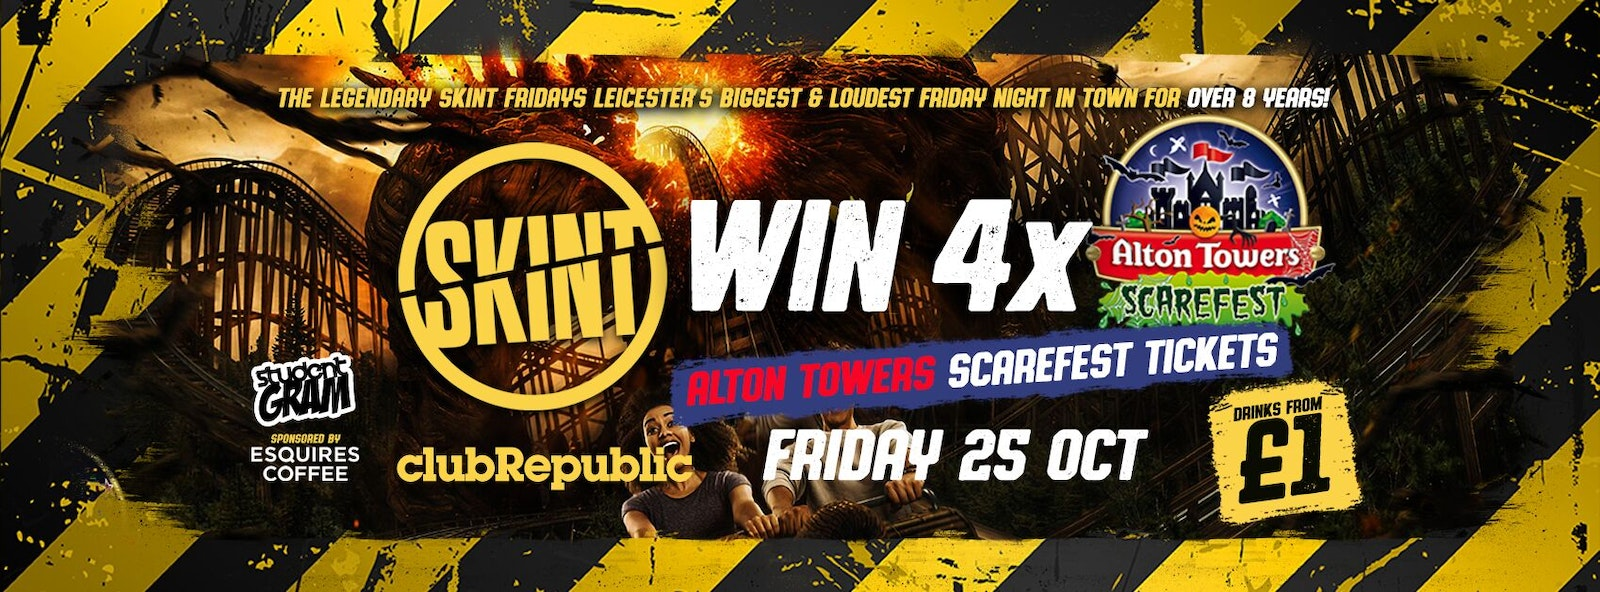 ★ Skint Fridays ★ Alton Towers Scarefest Tickets Giveaway ★ Club Republic ★